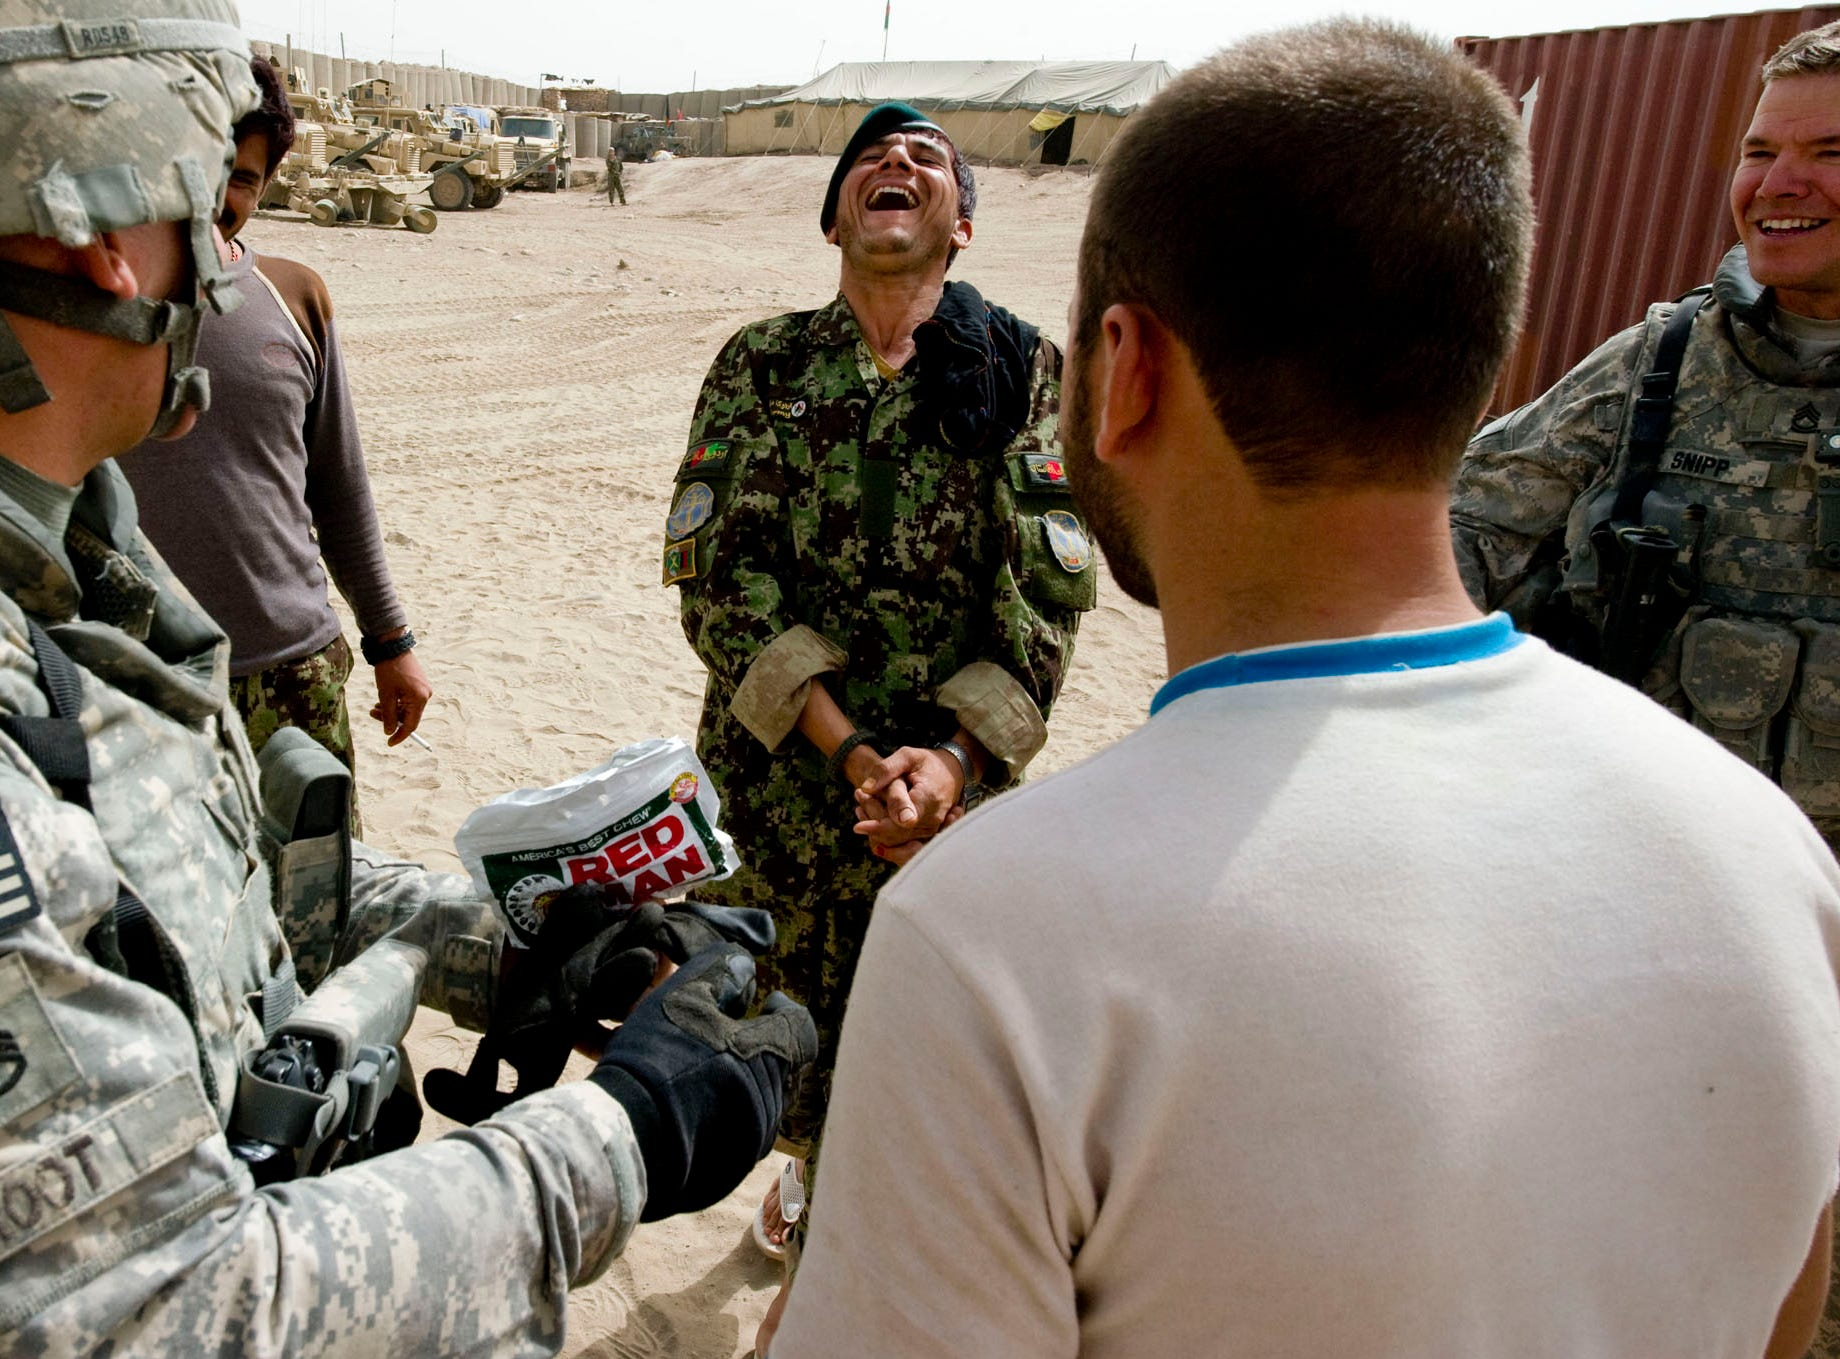 Left, Vermont National Guard Sgt. Carl Root of Milton offers some chewing tobacco to an Afghan National Army soldier with, right, Sgt. 1st Class Thomas Snipp of Morrisville after Echo Company arrived at a new Afghan Combat Post in Rahman Kheyl, a remote part of Afghanistan in southern Paktia Province, on Tuesday, September 14, 2010. The post, which is still under construction, is a joint effort of Vermont National Guard, Macedonian Rangers and the Afghan Army.